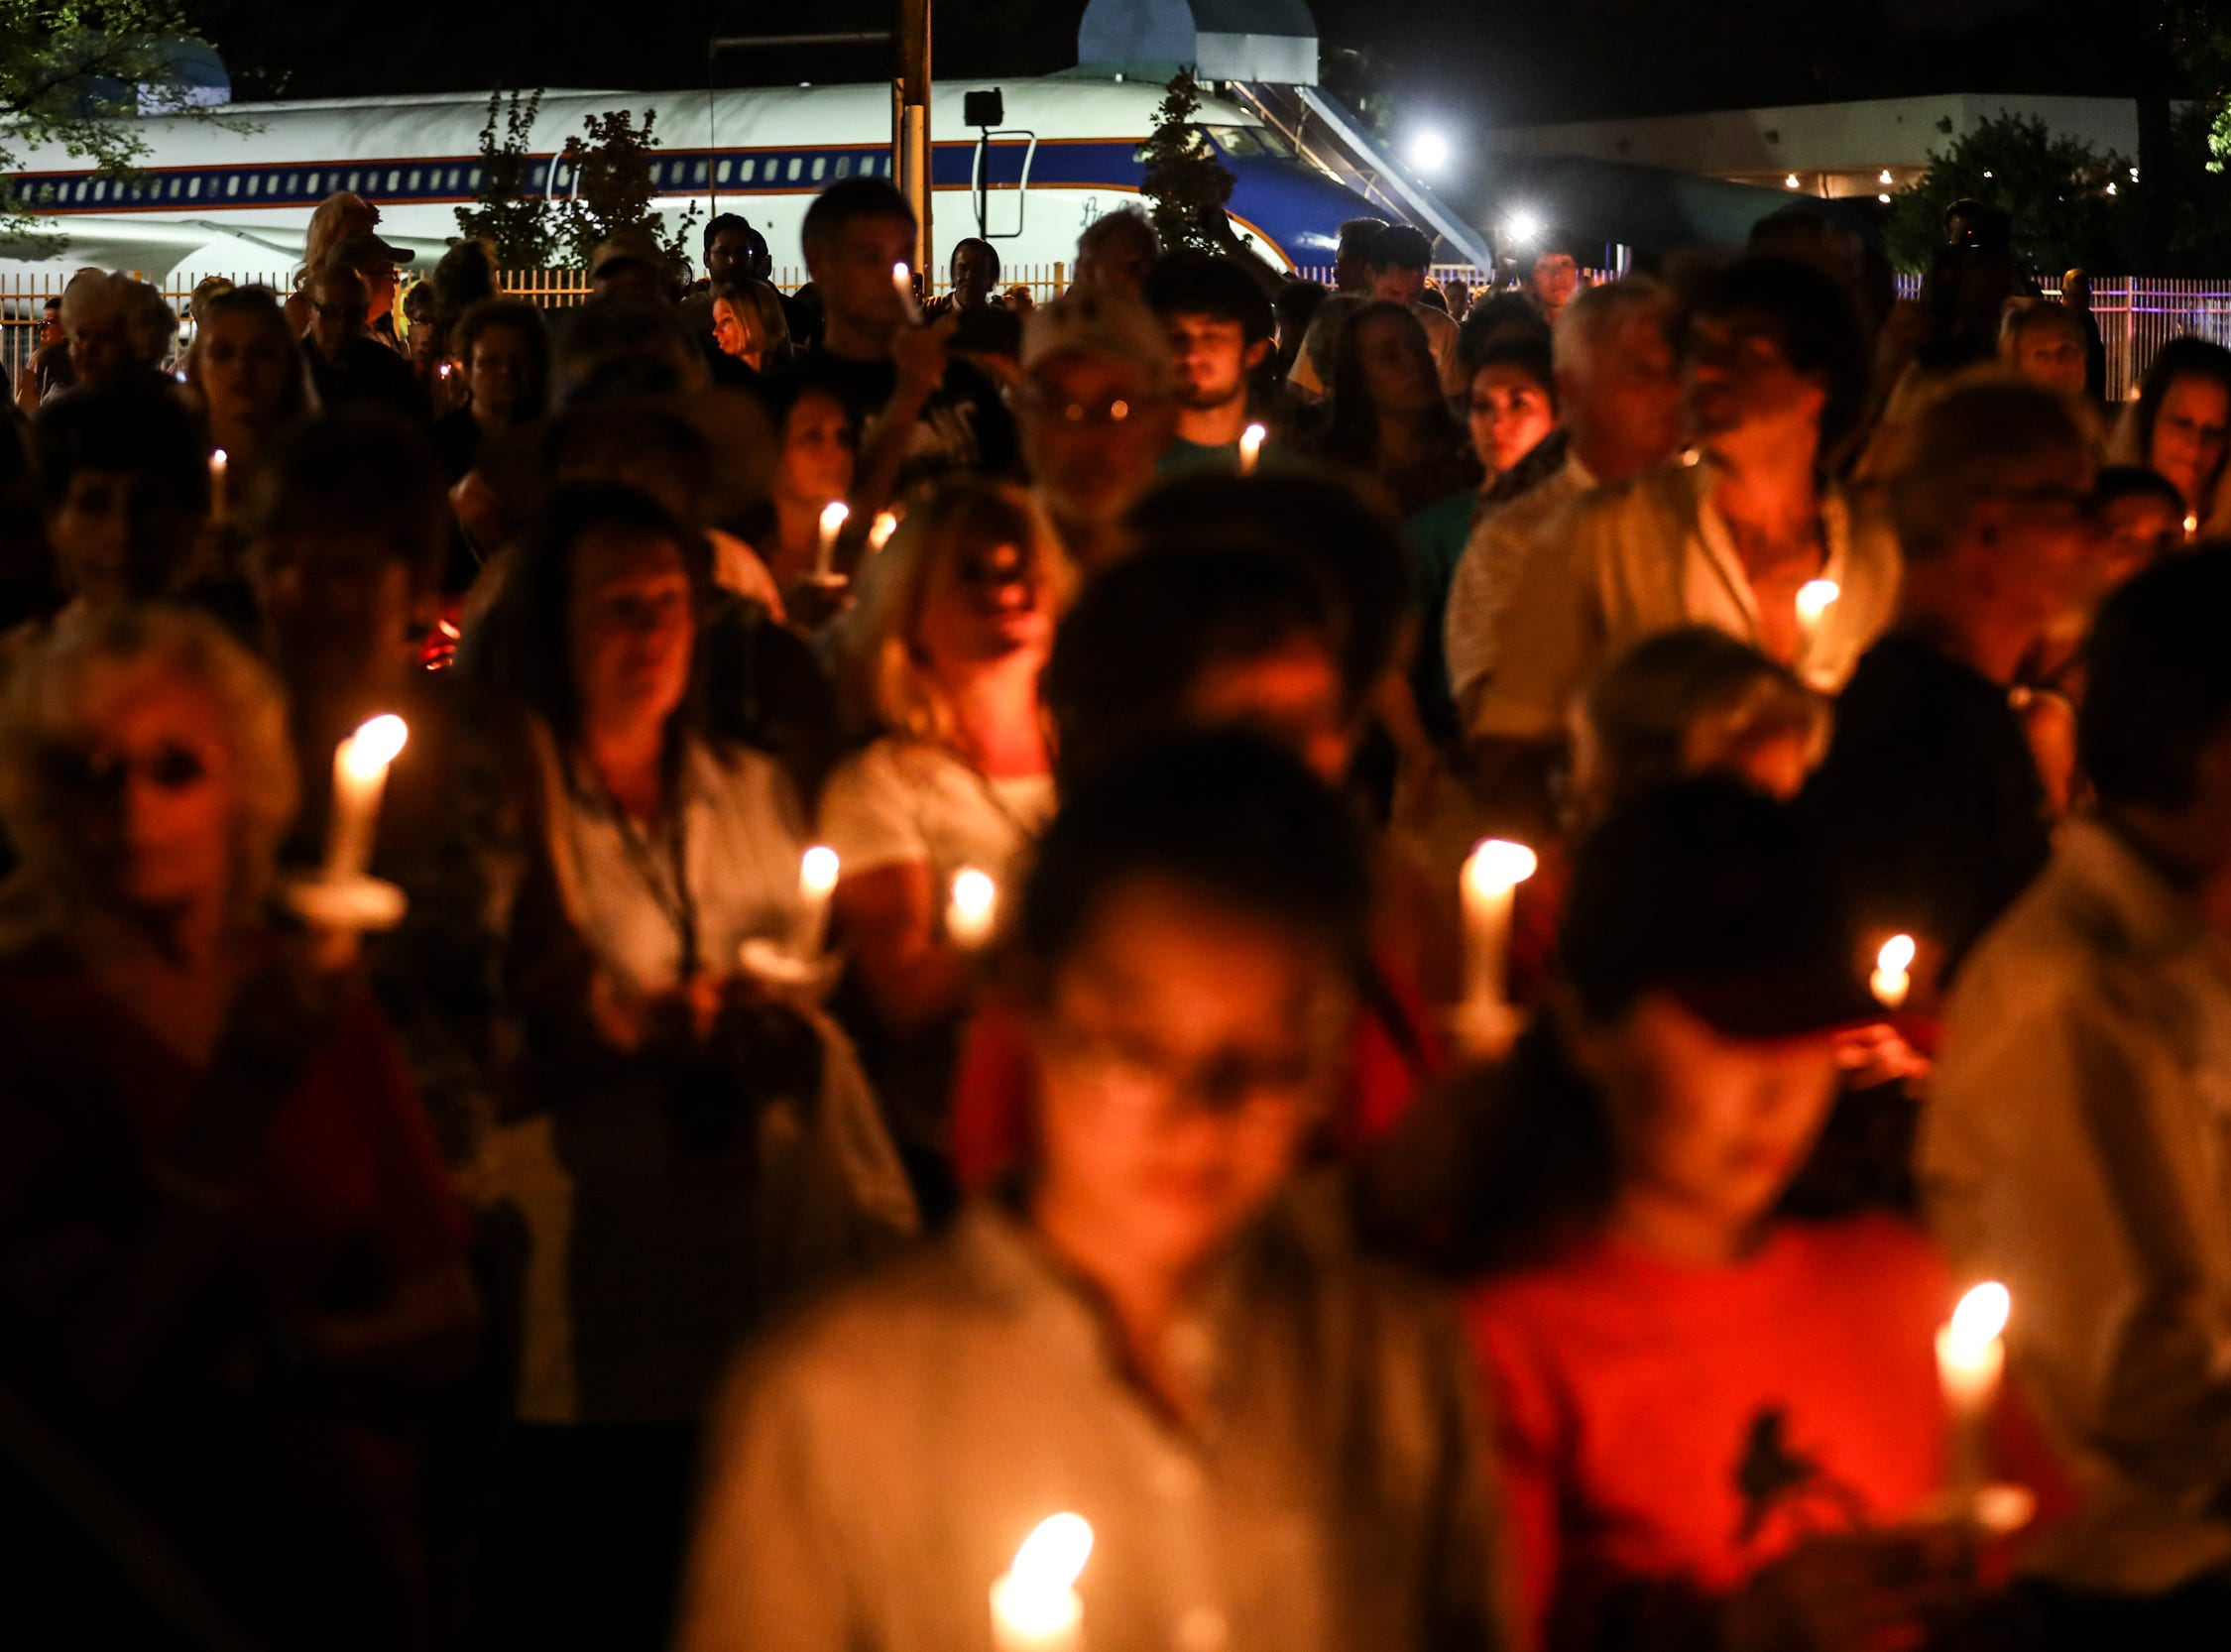 """August 14, 2018 - Elvis Presley fans attend a candlelight vigil during """"Elvis Week"""" that marks the 41st anniversary of Presley's Aug. 16 death."""